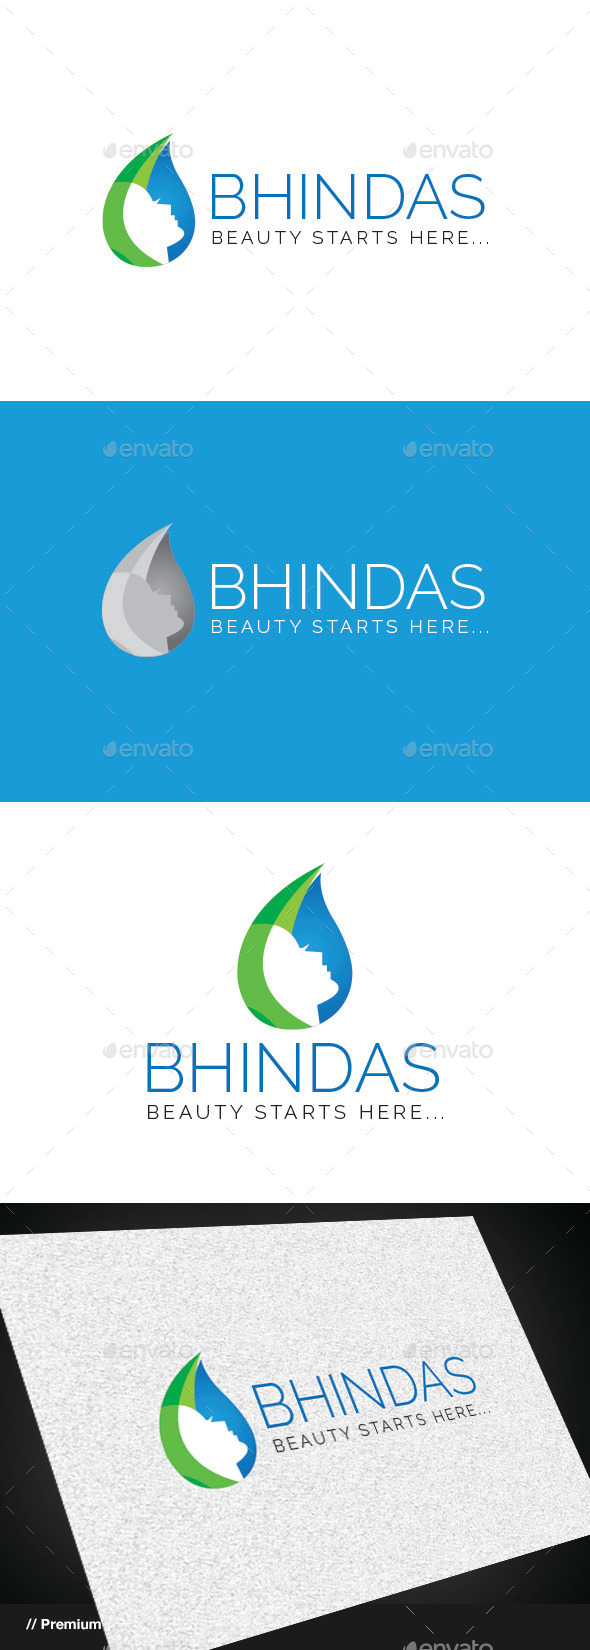 Bhindas Beauty Logo - Nature Logo Templates